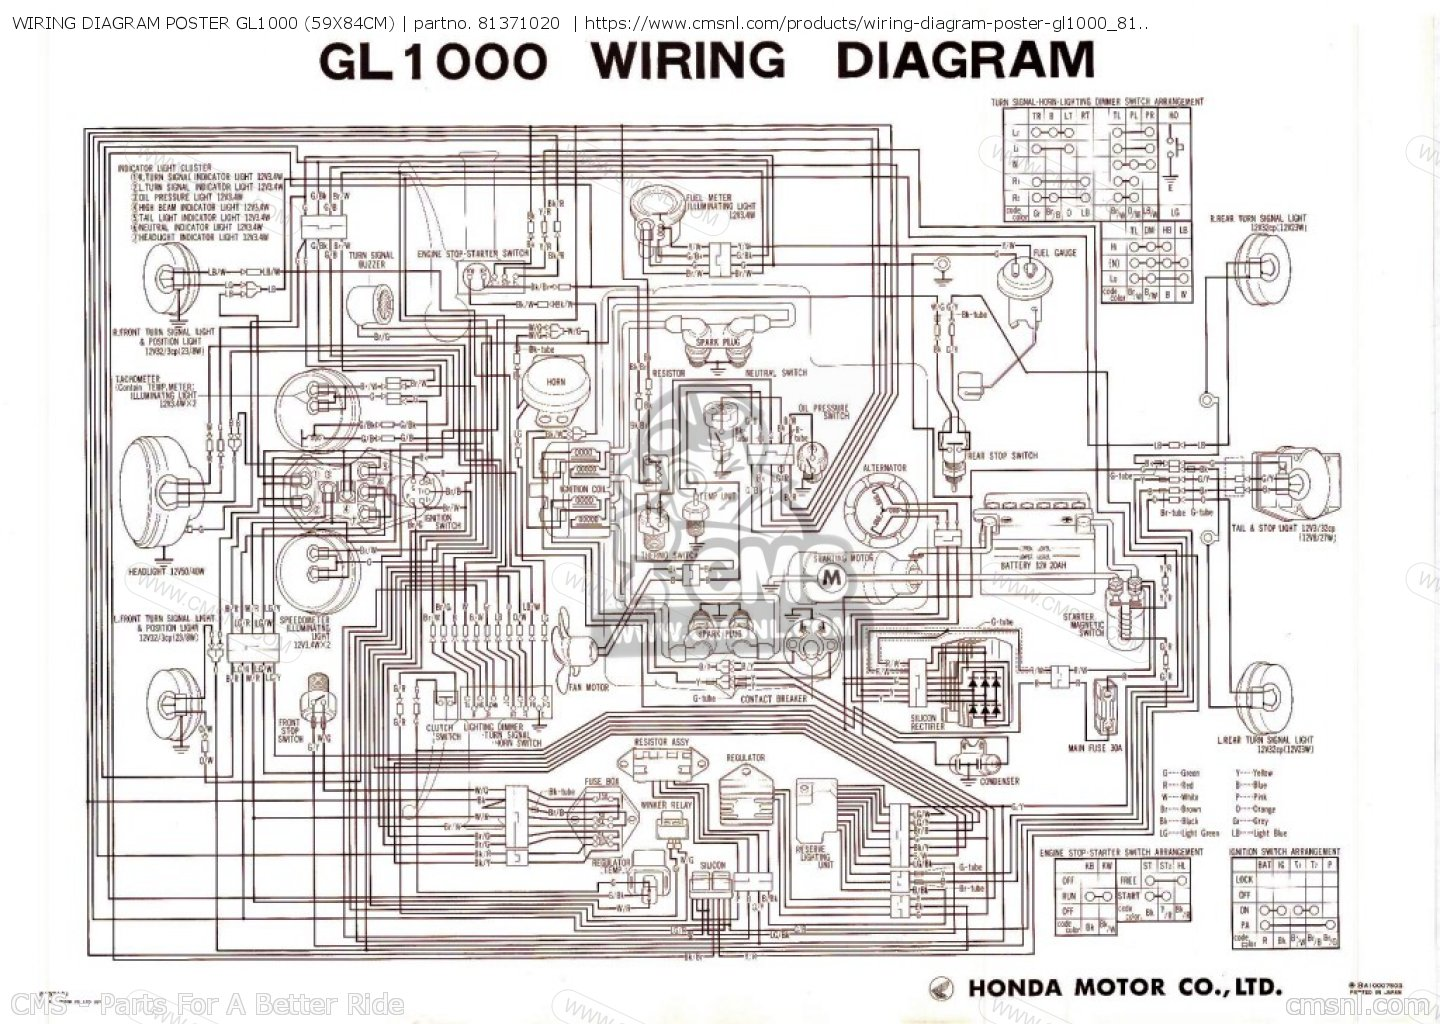 1978 Honda Goldwing Wiring Diagram